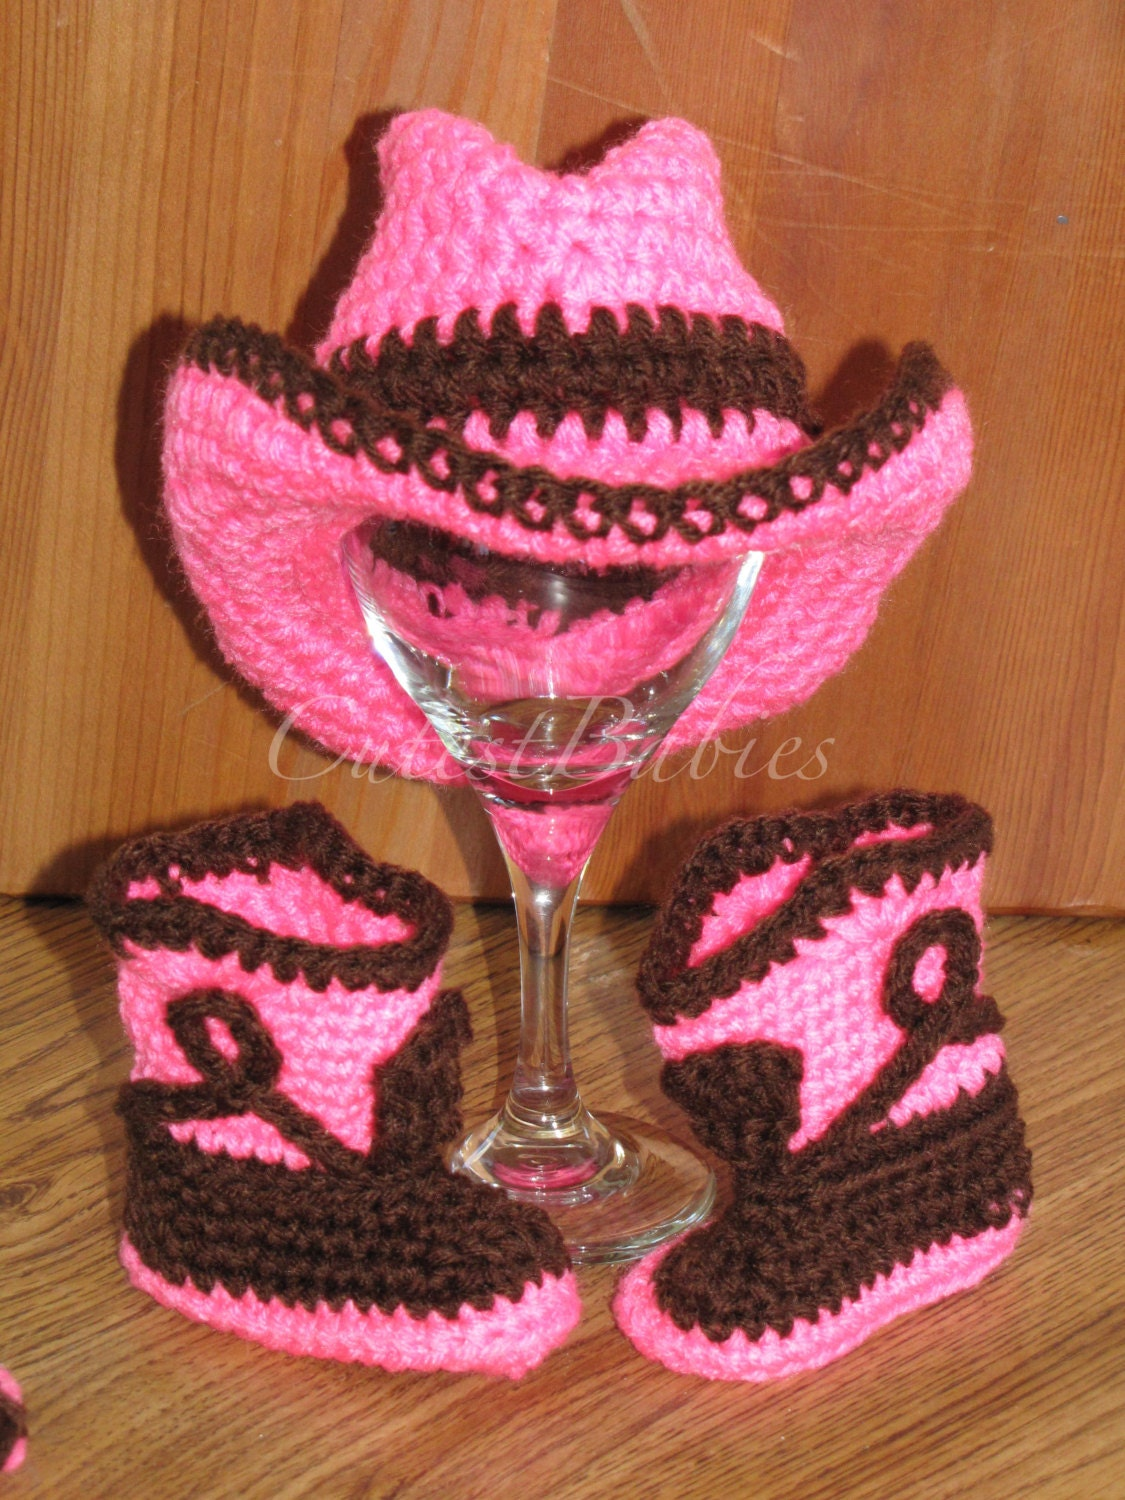 Crochet Pattern For Cowboy Hat And Boots : Newborn Baby Crochet Cowboy Hat & Boots Photo Prop....